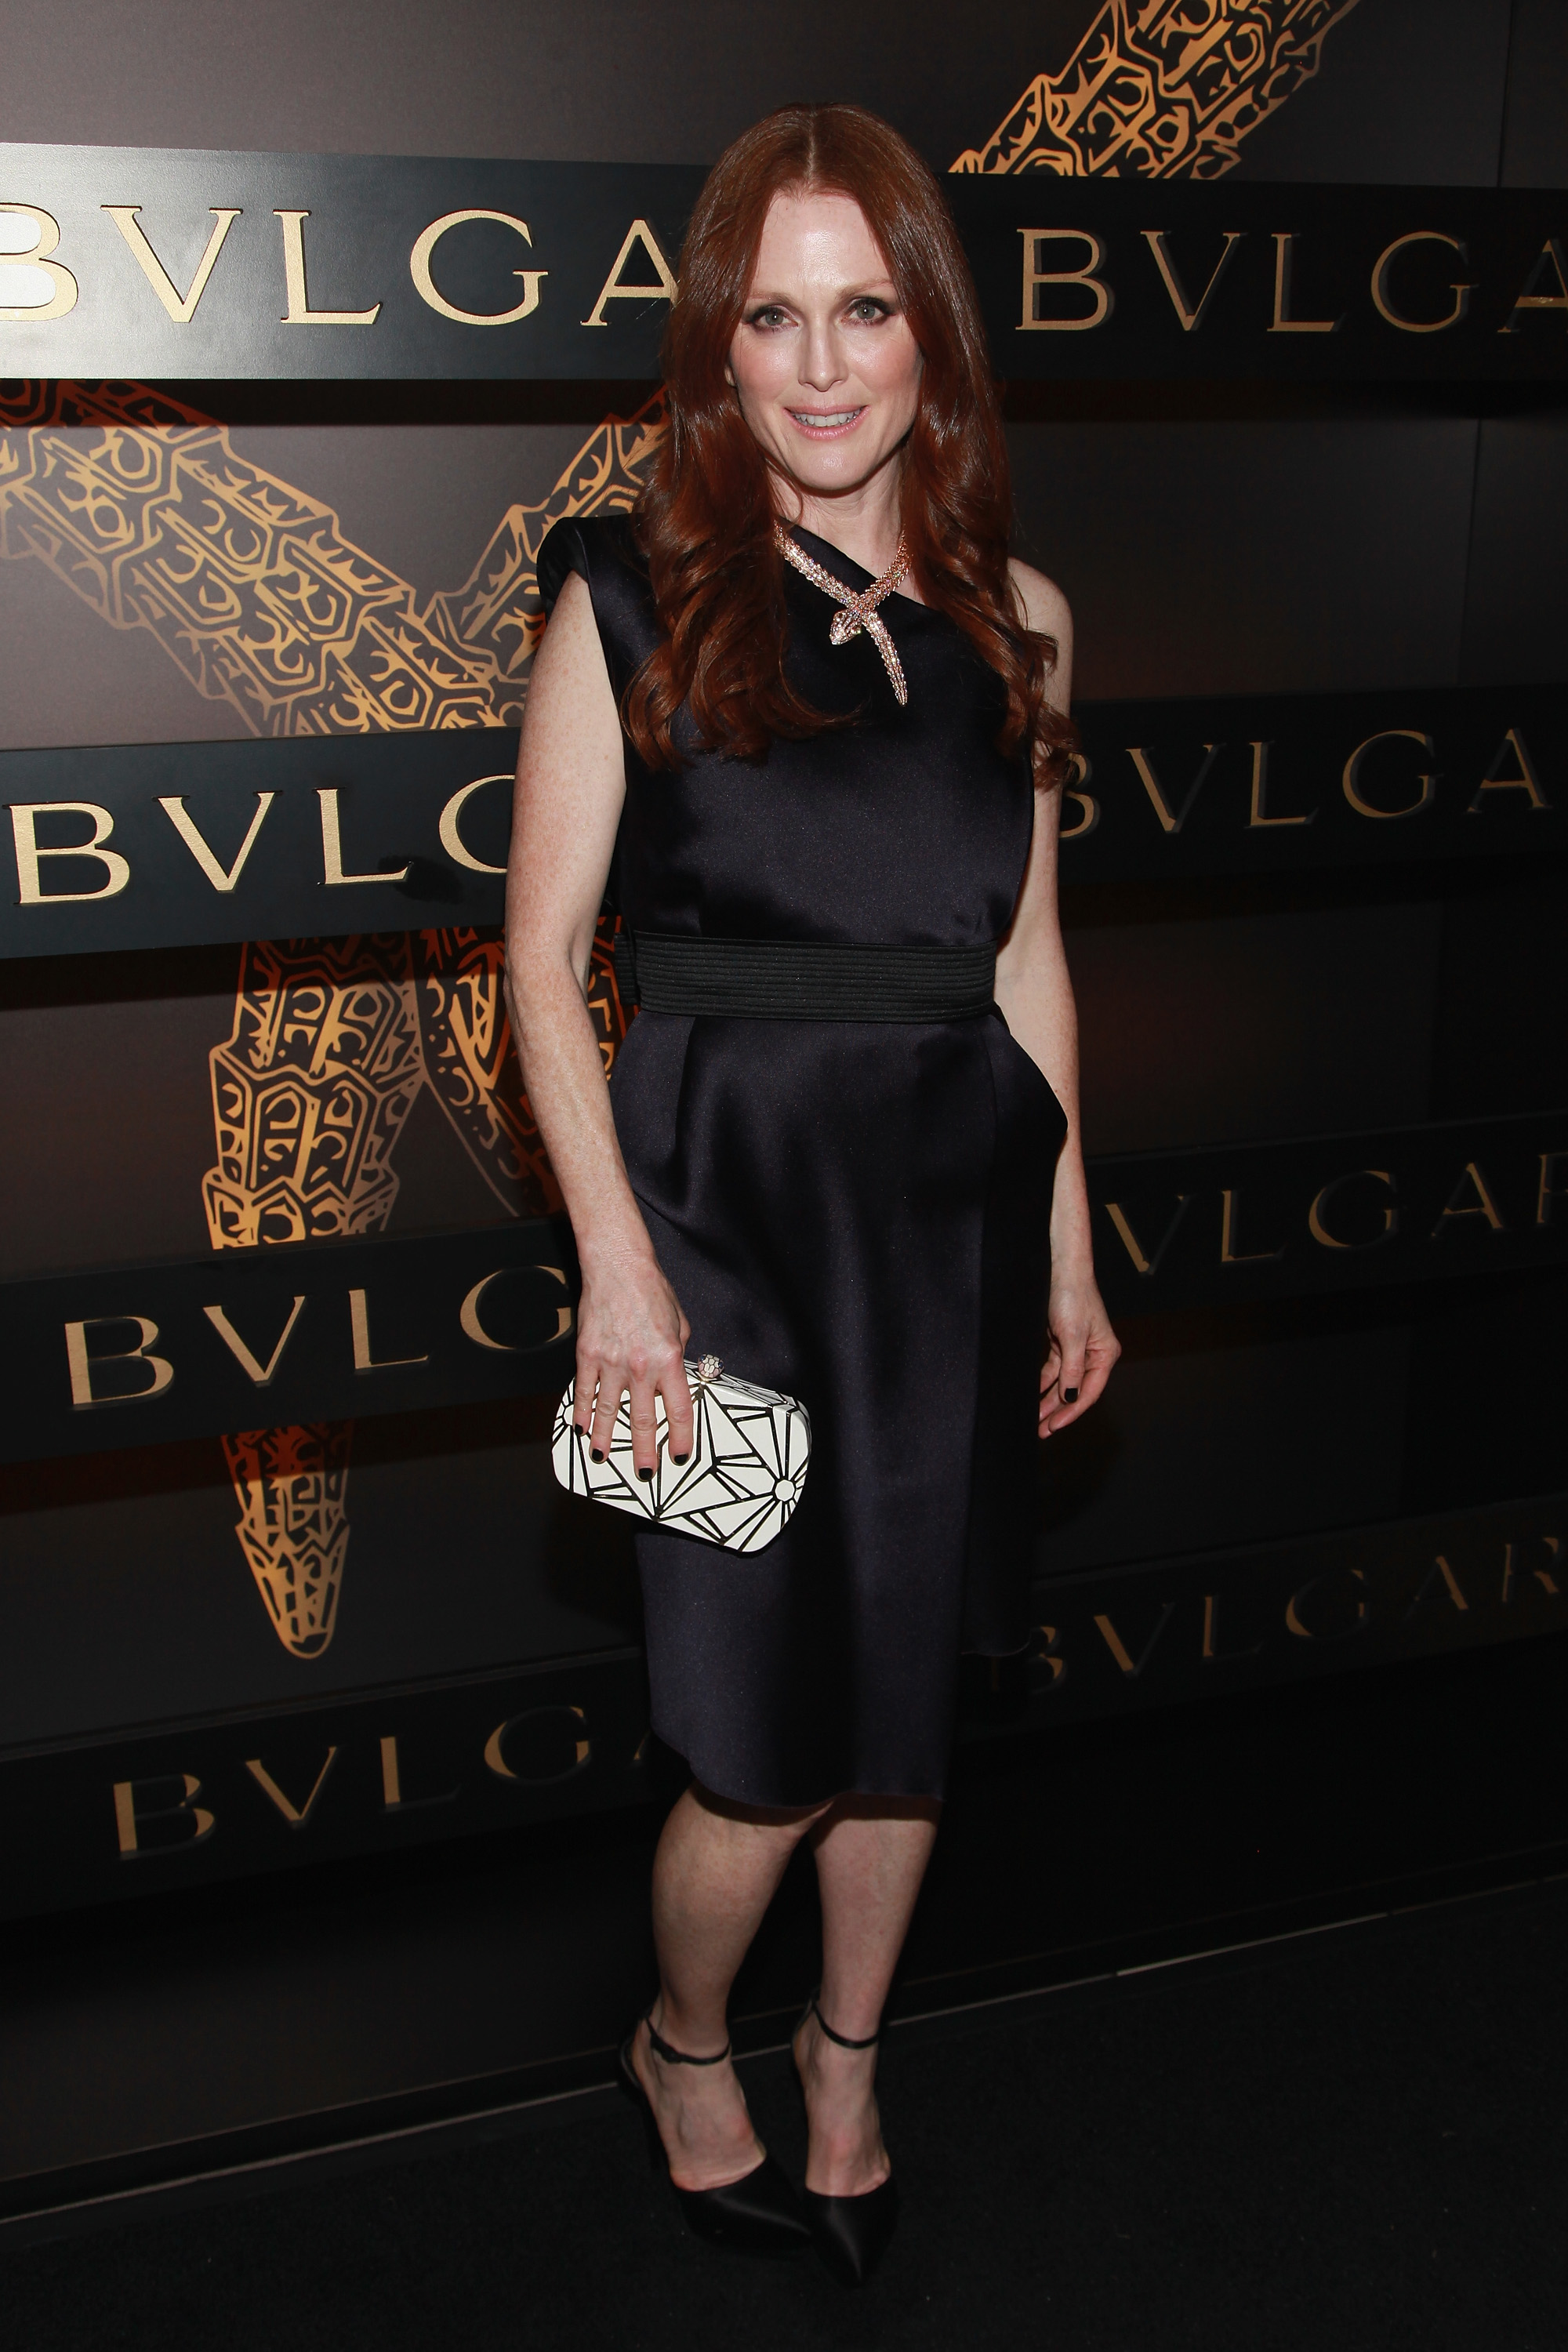 Julianne Moore attended Bulgari's event in NYC on Saturday.